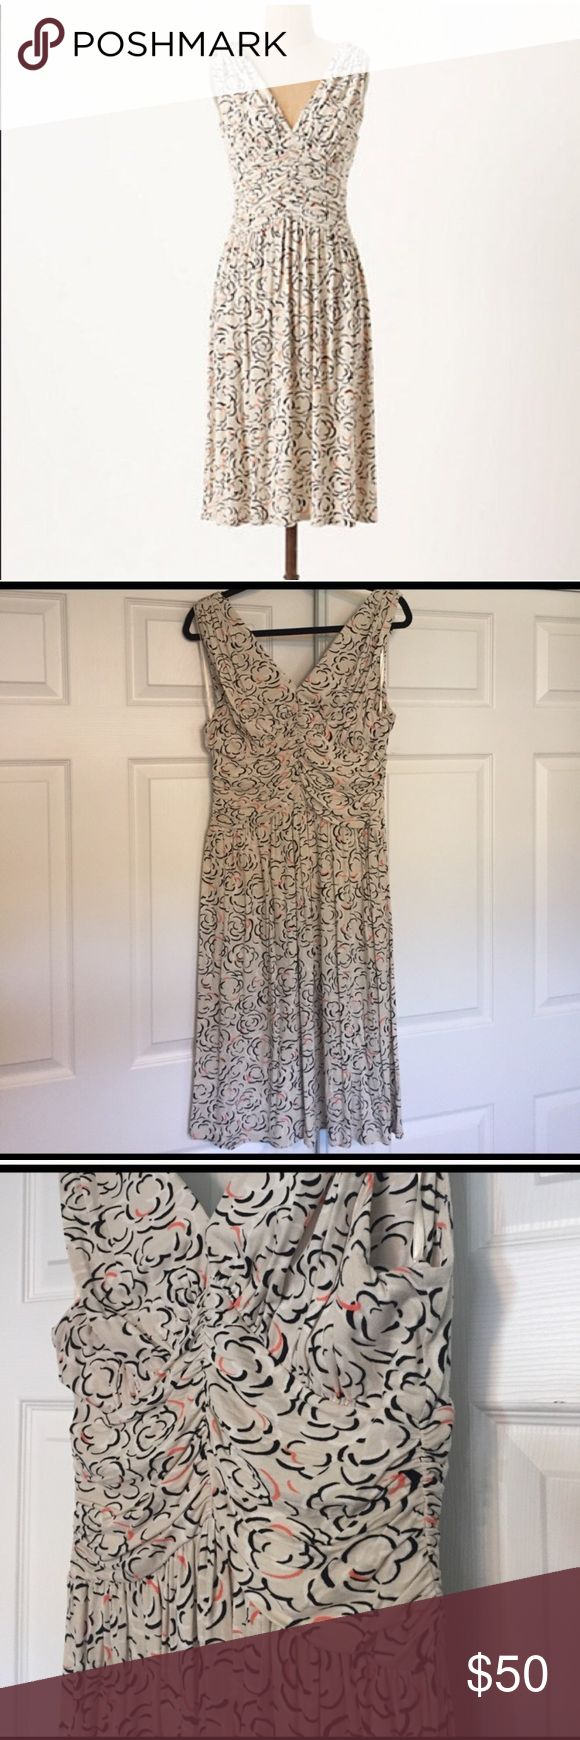 """Anthropologie Cloud Rose Dress Great used condition Cloud Rose dress by Deletta. 43"""" long, 16"""" across waist unstretched. Deep V neck with rouching and a-line shape for amazingly flattering fit. Can fit 14/16 as there's lots of stretch. Minimal piling around arms. Excellent for work to date night or weekend events. Anthropologie Dresses"""